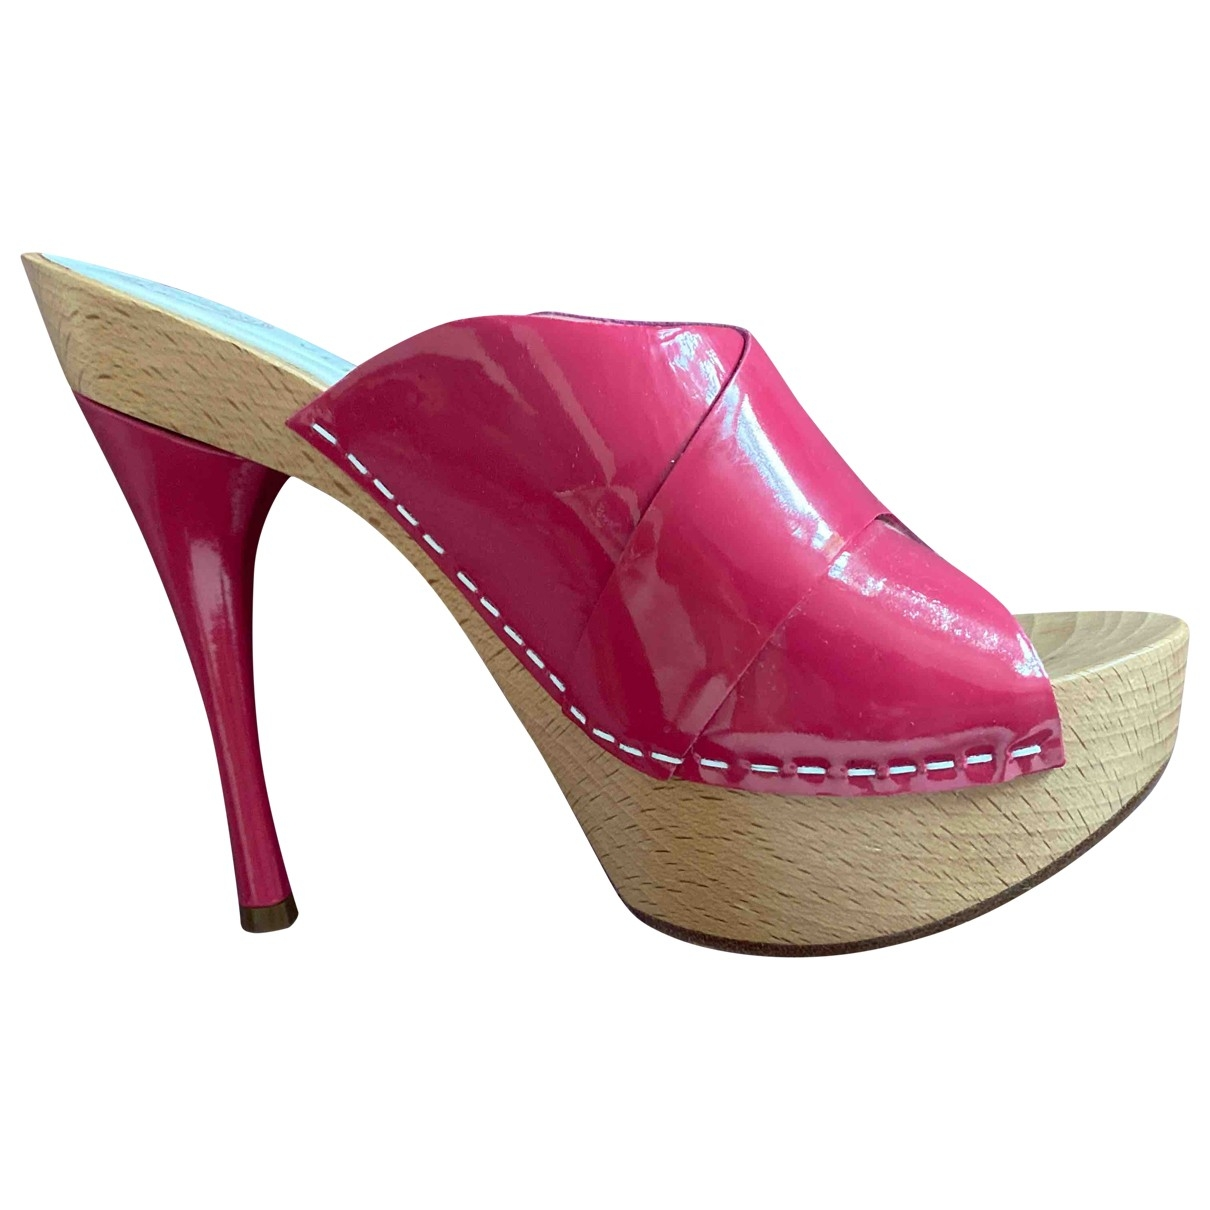 Versace \N Pink Patent leather Mules & Clogs for Women 37 EU